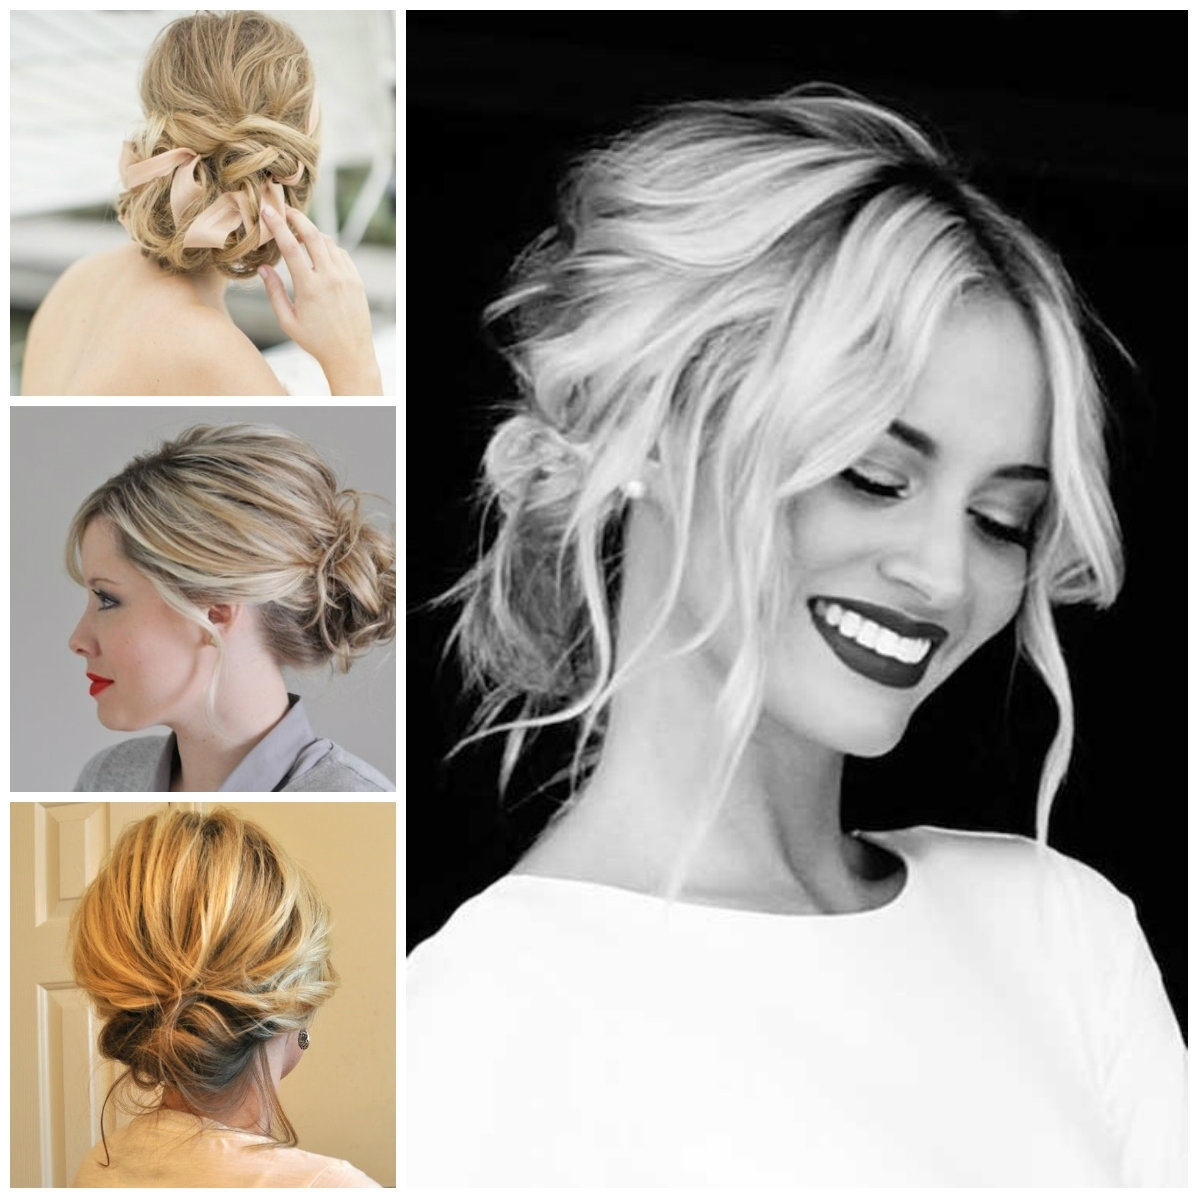 Shoulder Length Hairstyles Updo Tender Updos For Medium Length Hair In Updo Hairstyles With Bangs For Medium Length Hair (View 11 of 15)